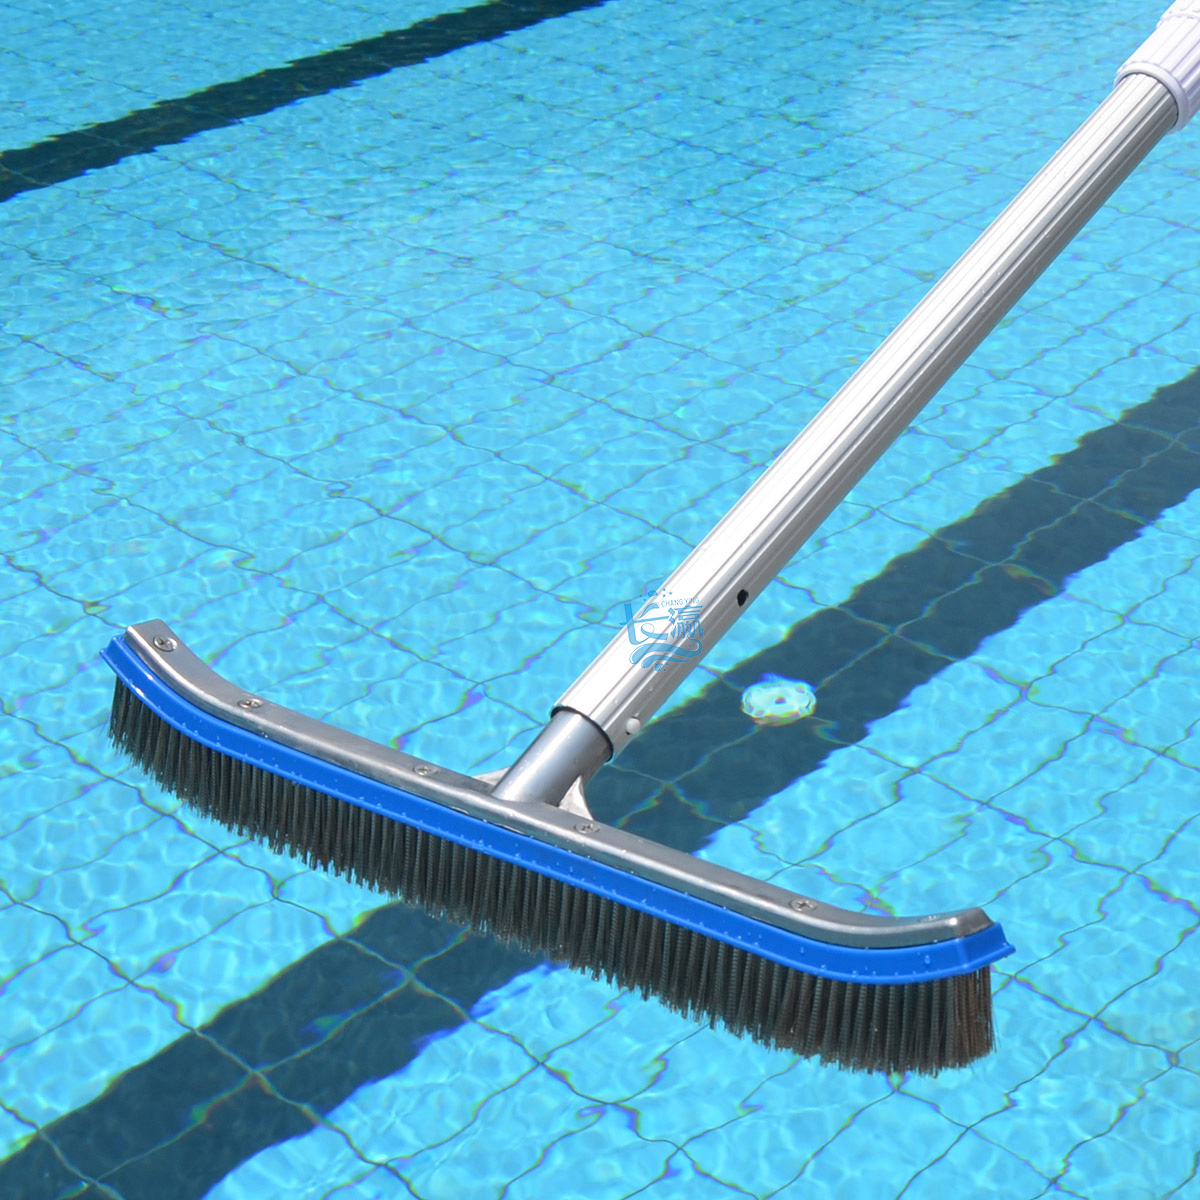 Stainless steel wire brush to brush the pool 18 inch aluminum adhesive bottom wall cleaning brush brush brush moss pond pool Tools